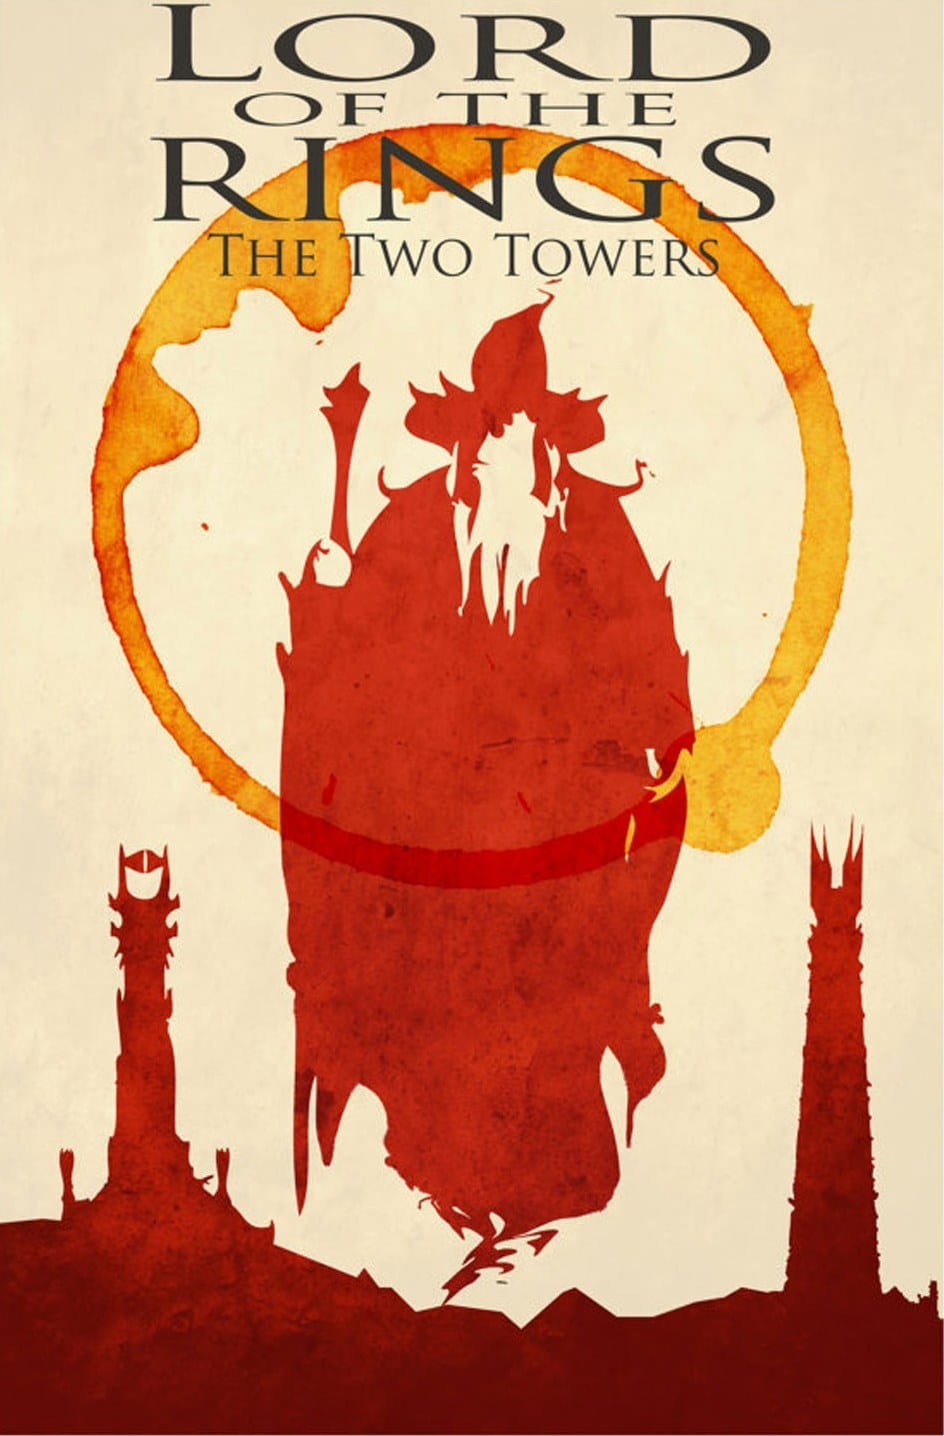 the lord of the rings 1 2002 the two towers high quality HD printable poster animated gandalf red and white art cartoon